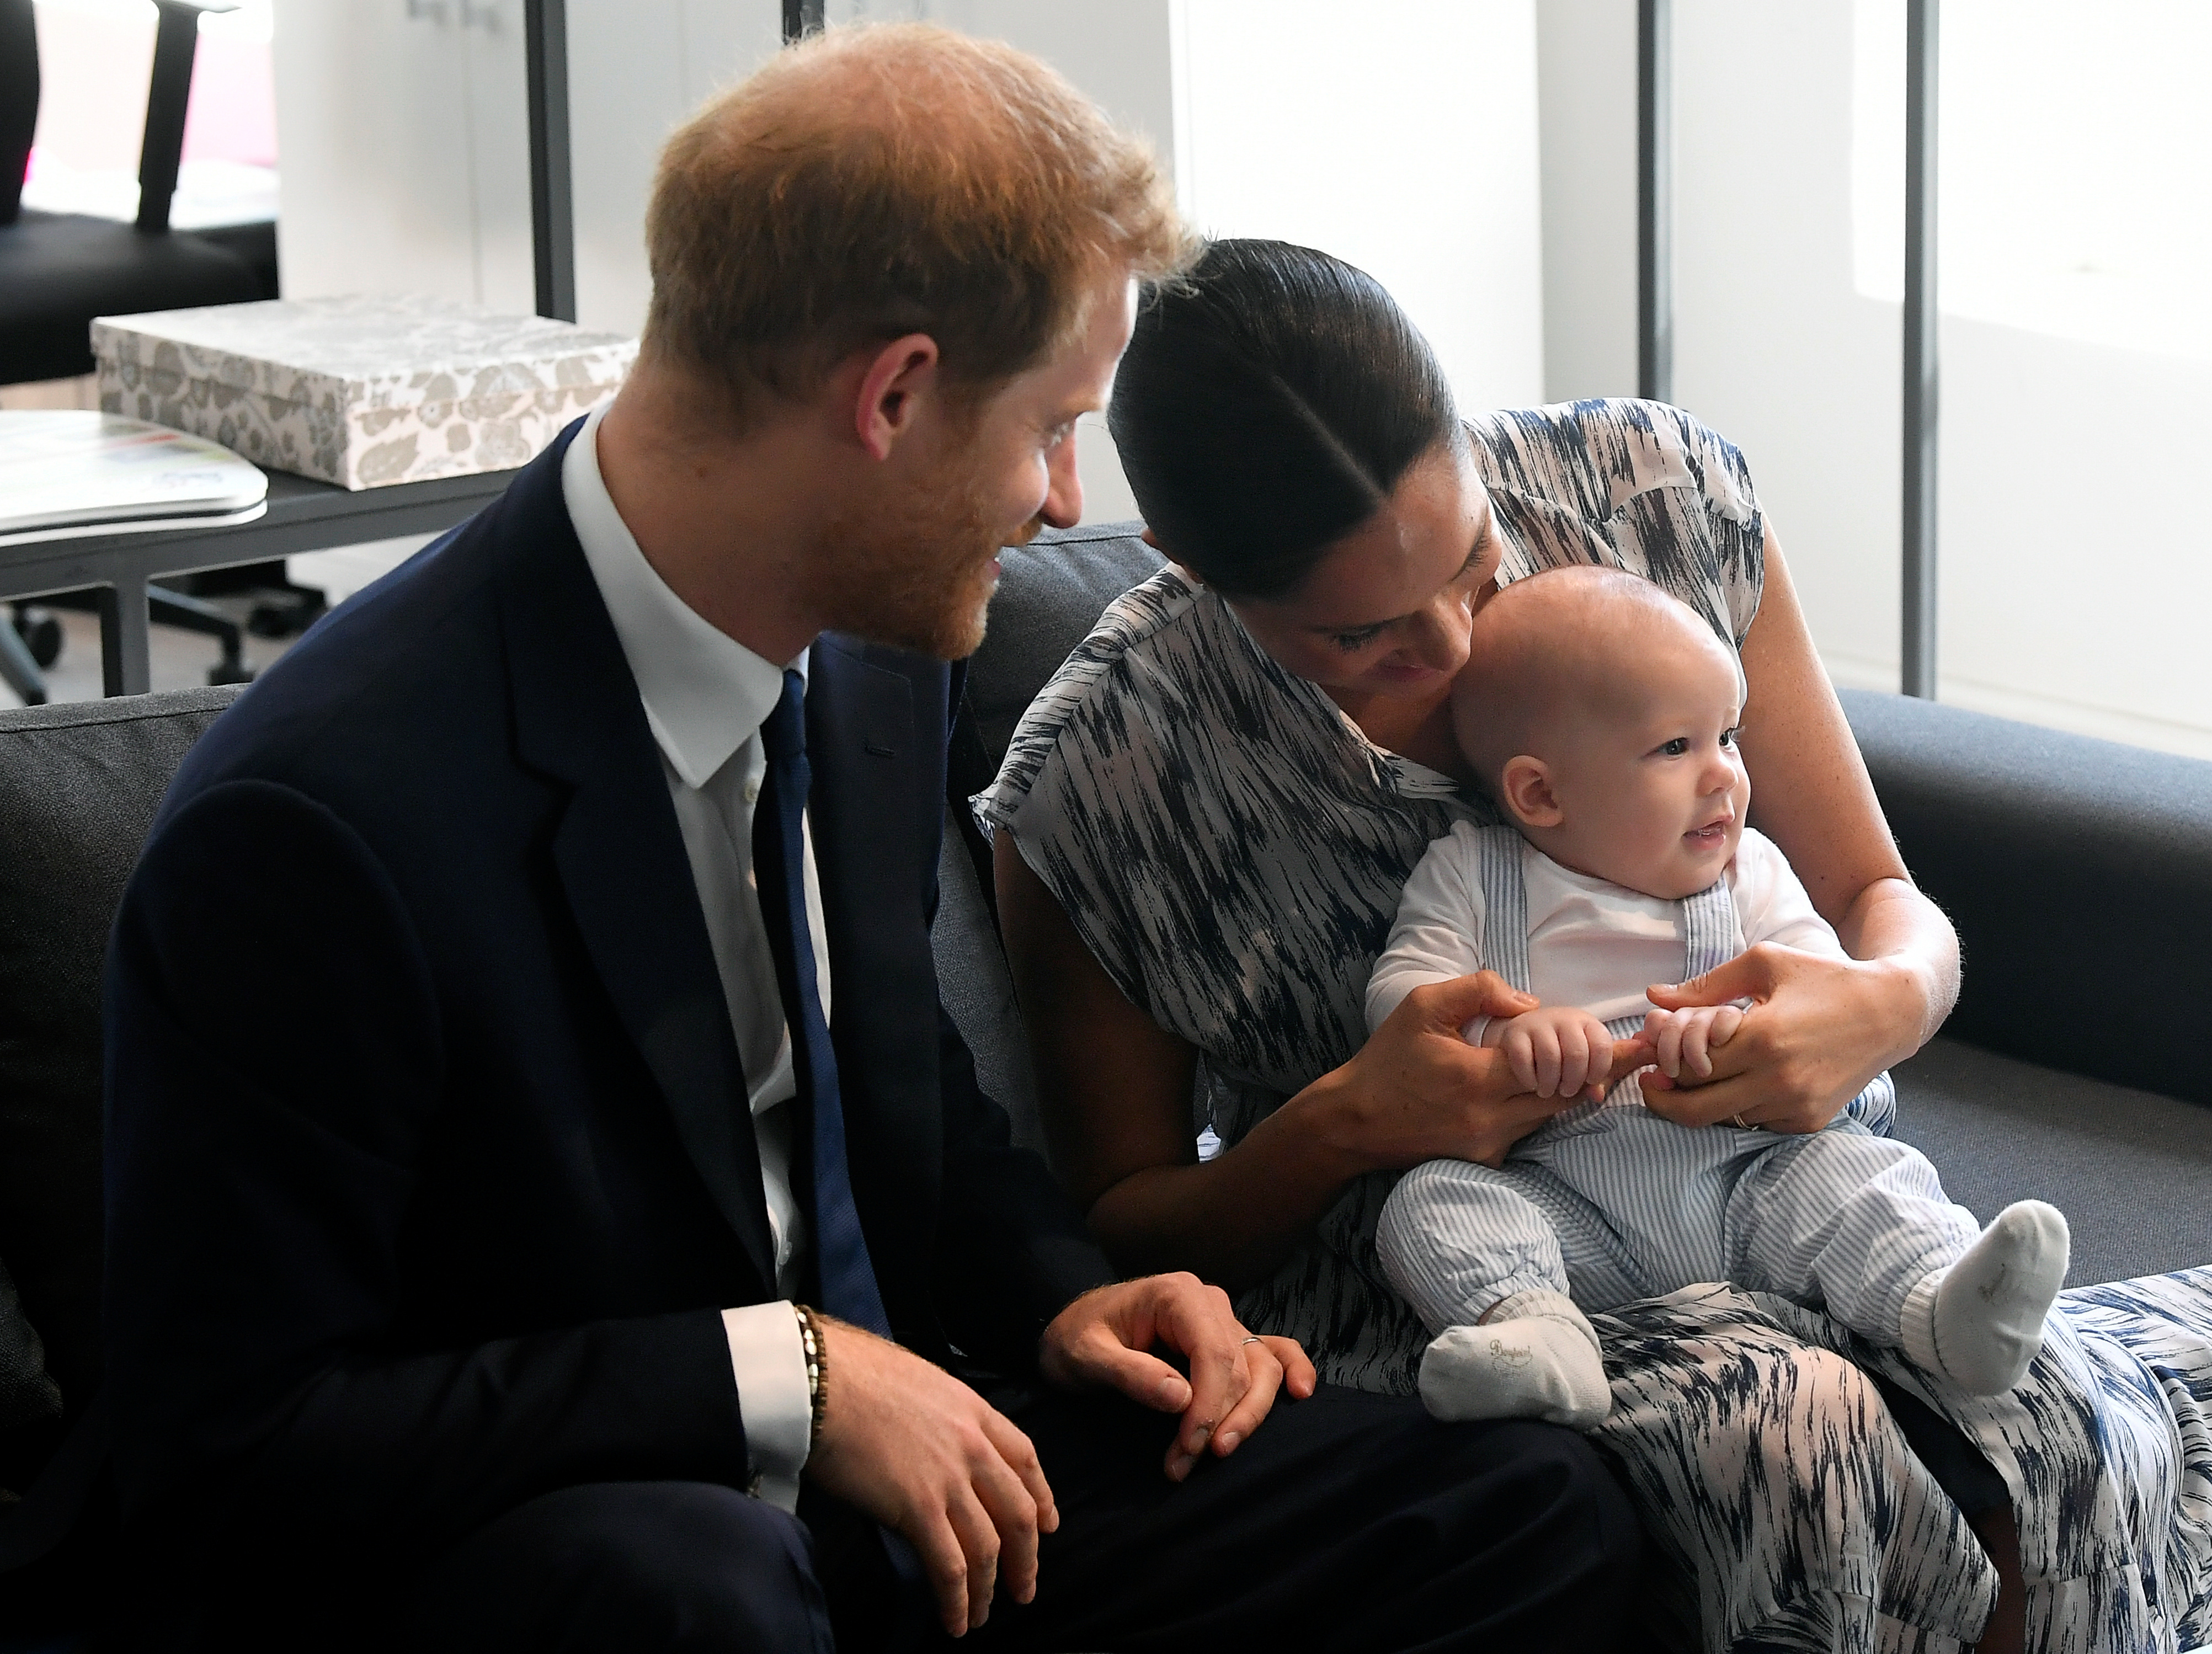 The Duke and Duchess of Sussex holding their son Archie meet with Archbishop Desmond Tutu and Mrs Tutu at their legacy foundation in cape Town, on day three of their tour of Africa.